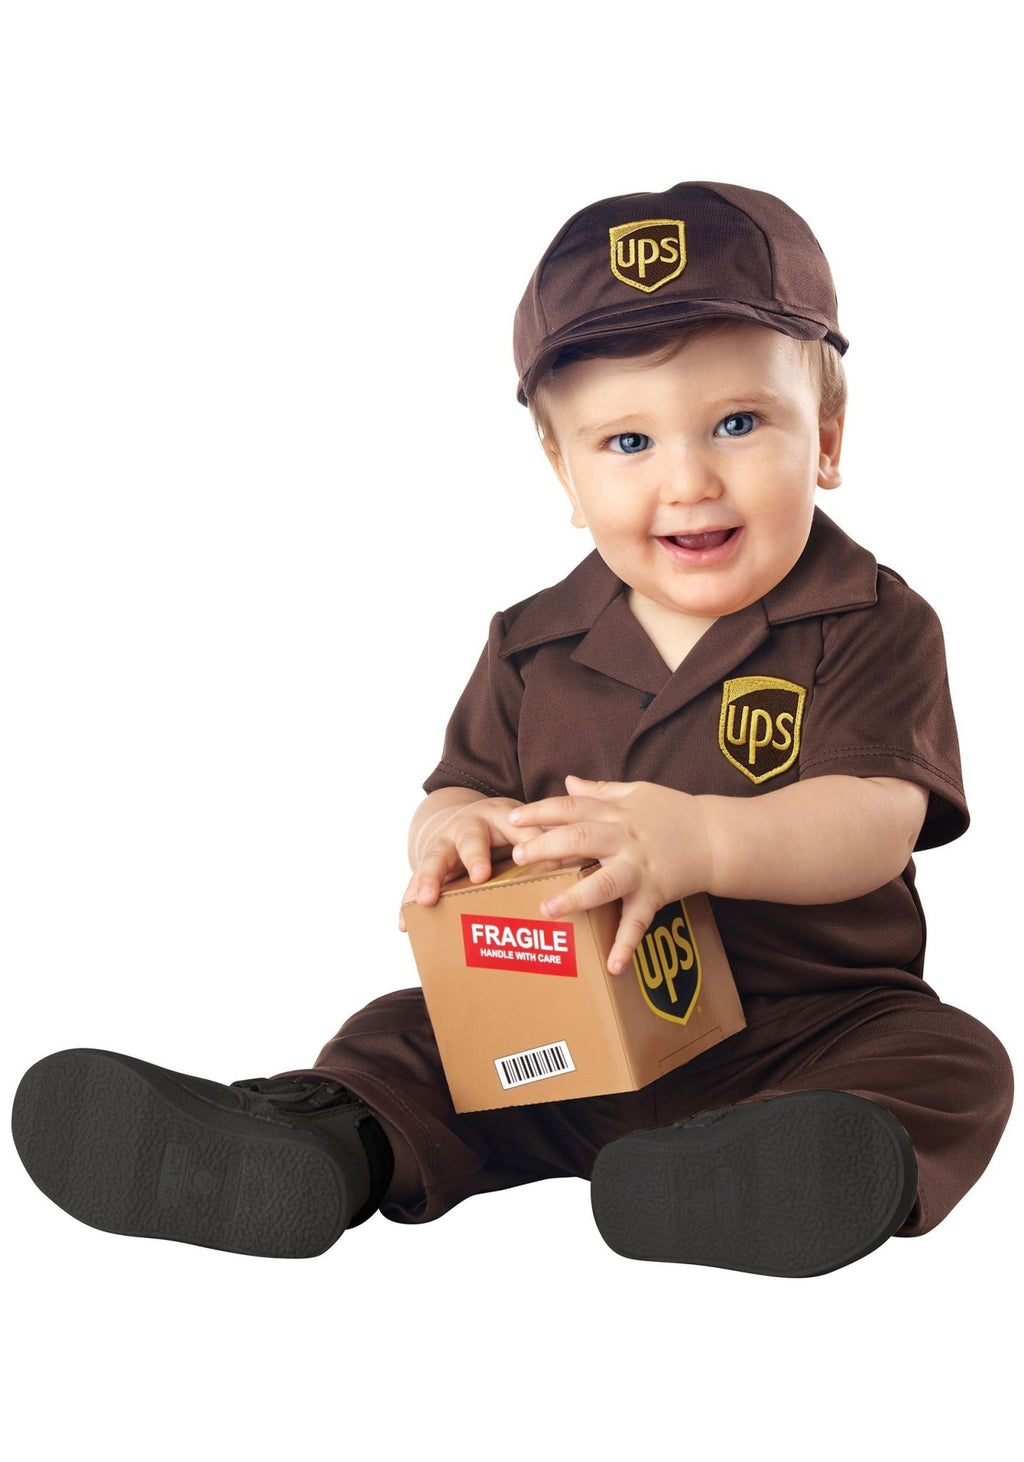 UPS Driver Baby Costume - Party Zone USA